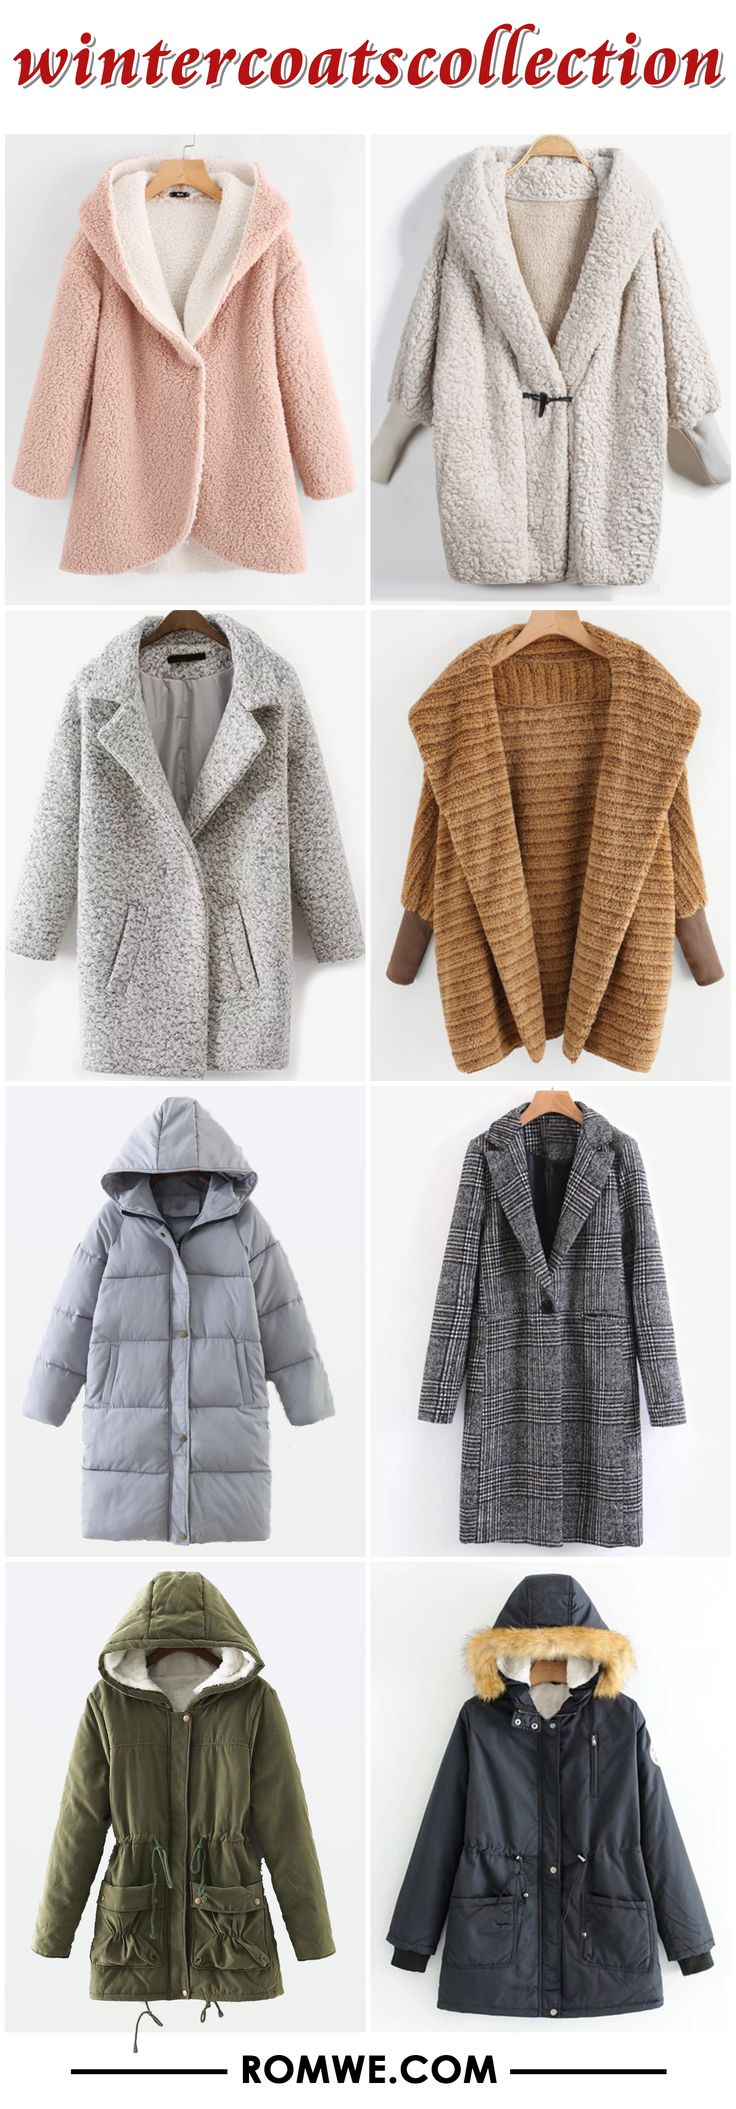 winter coats collection from romwe.com